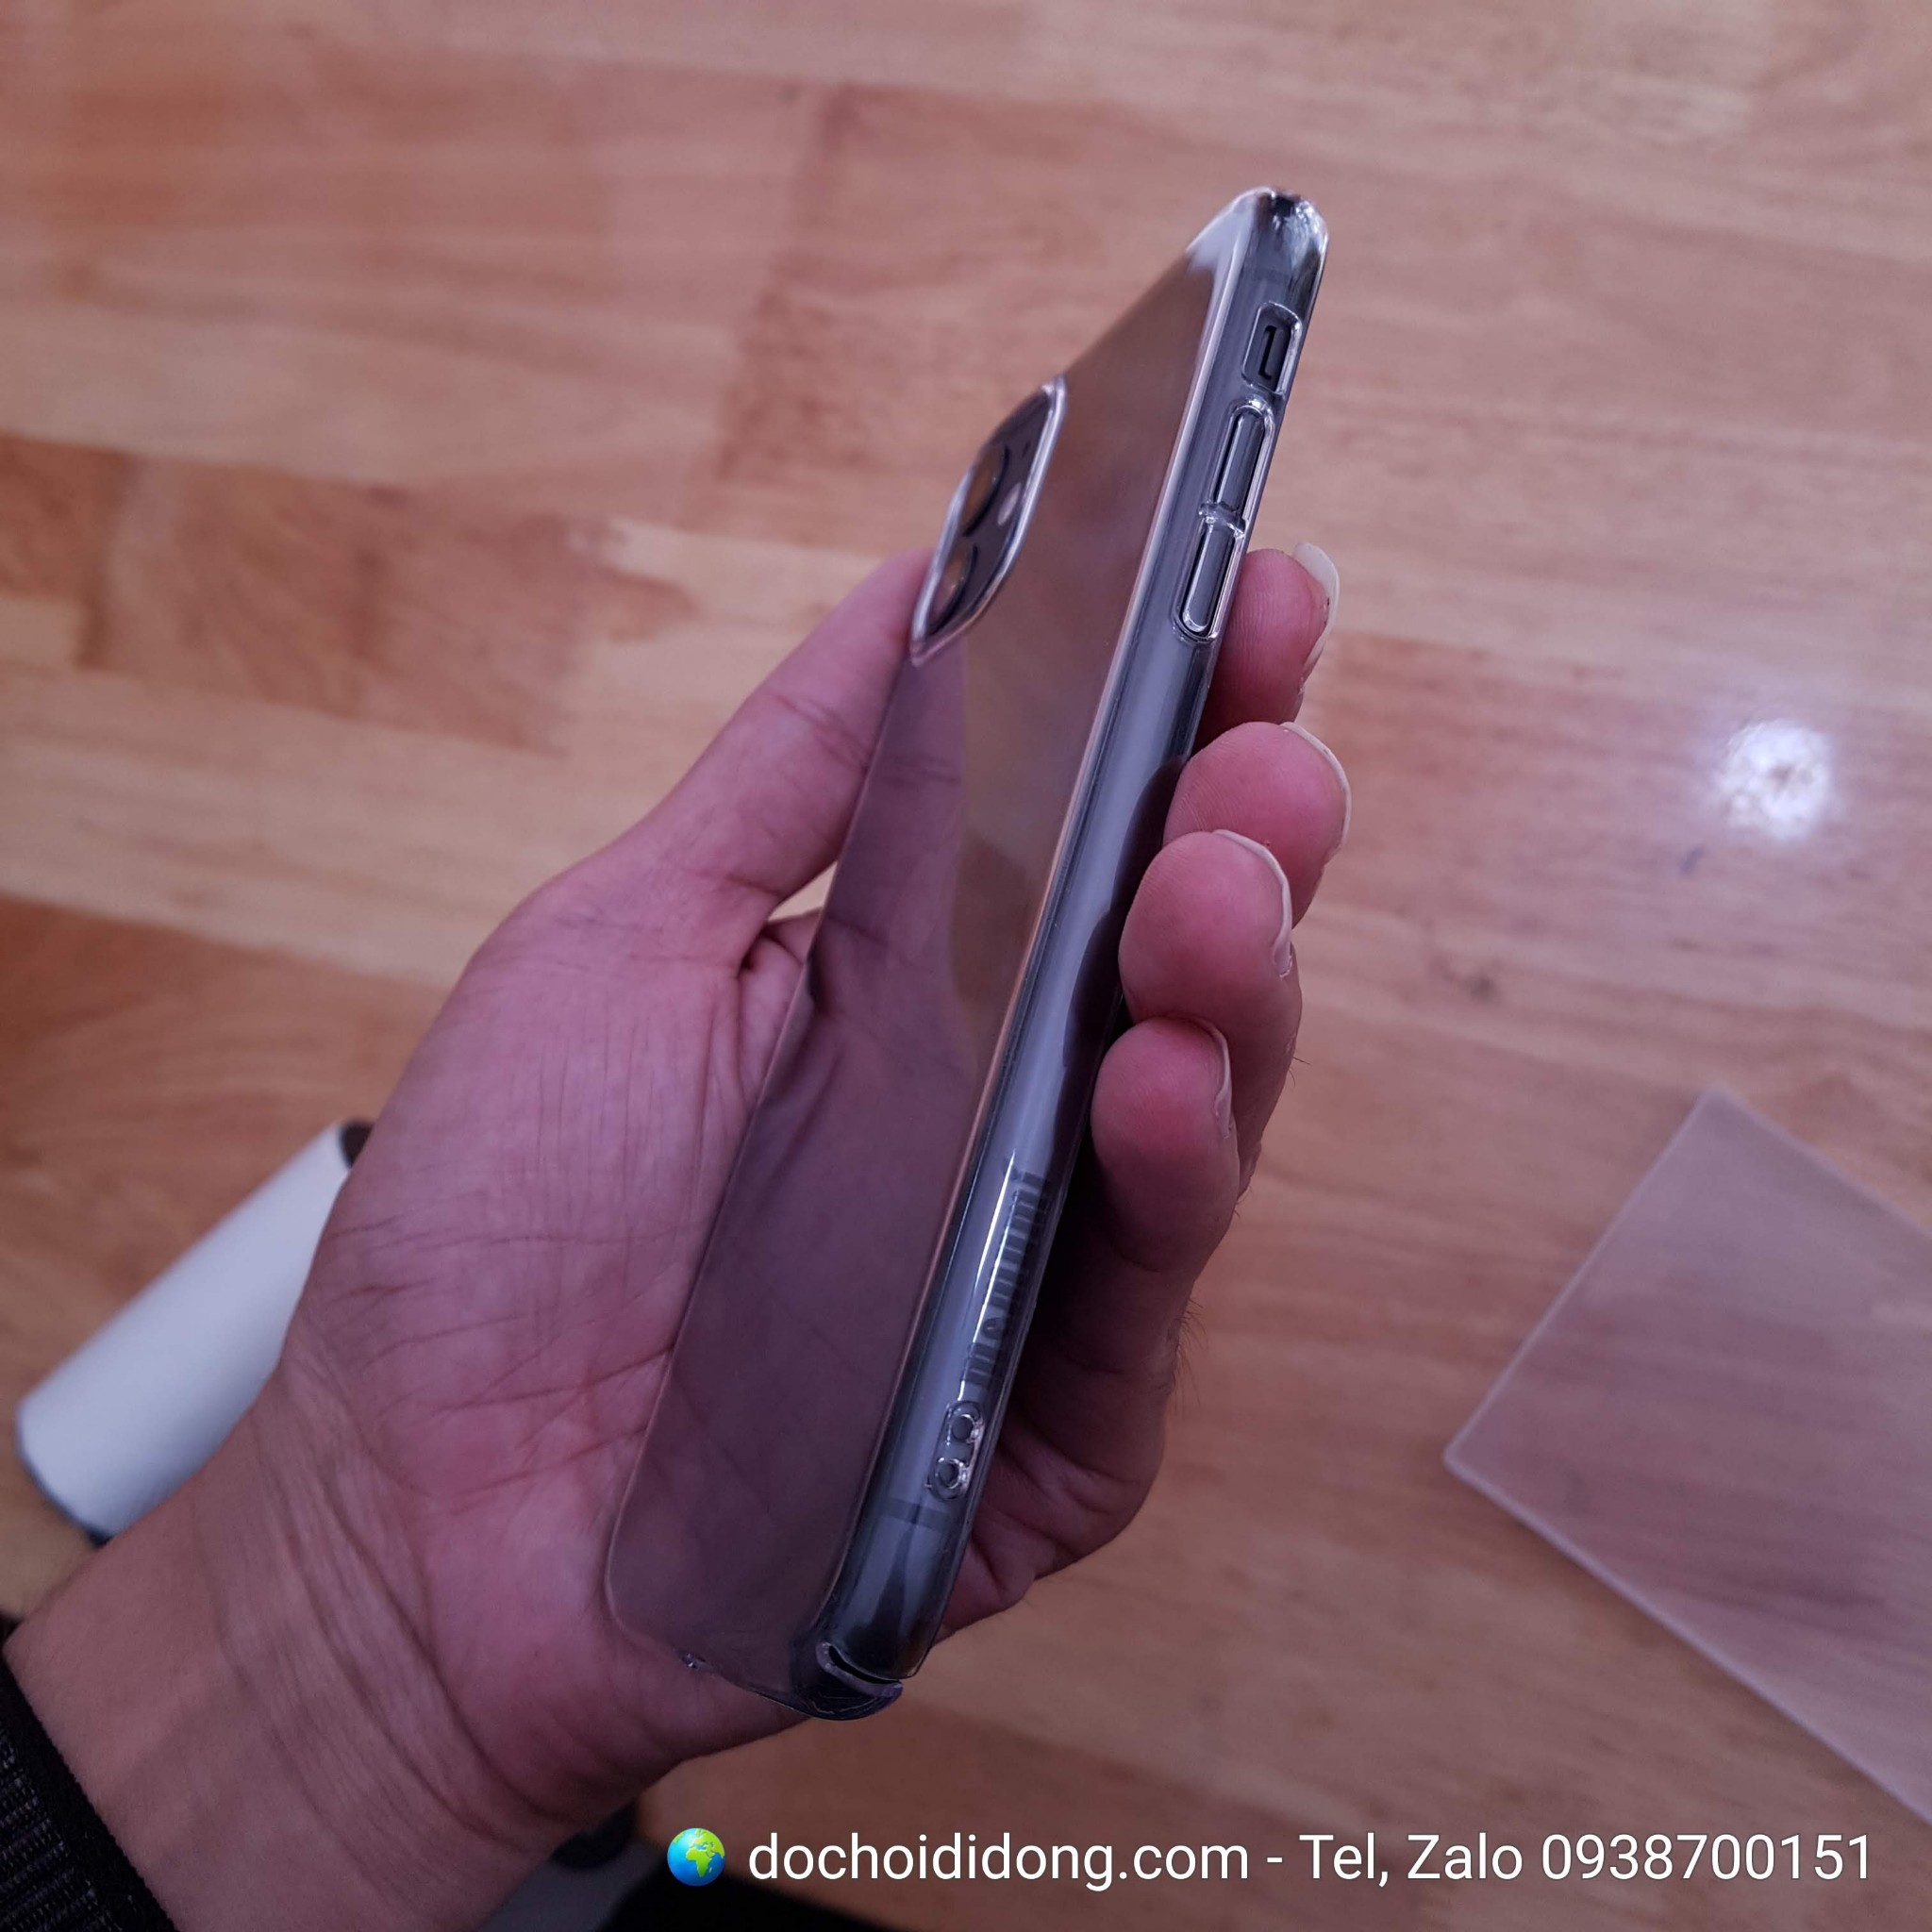 Ốp lưng iPhone 11 Pro Max Memumi Crystal Clear